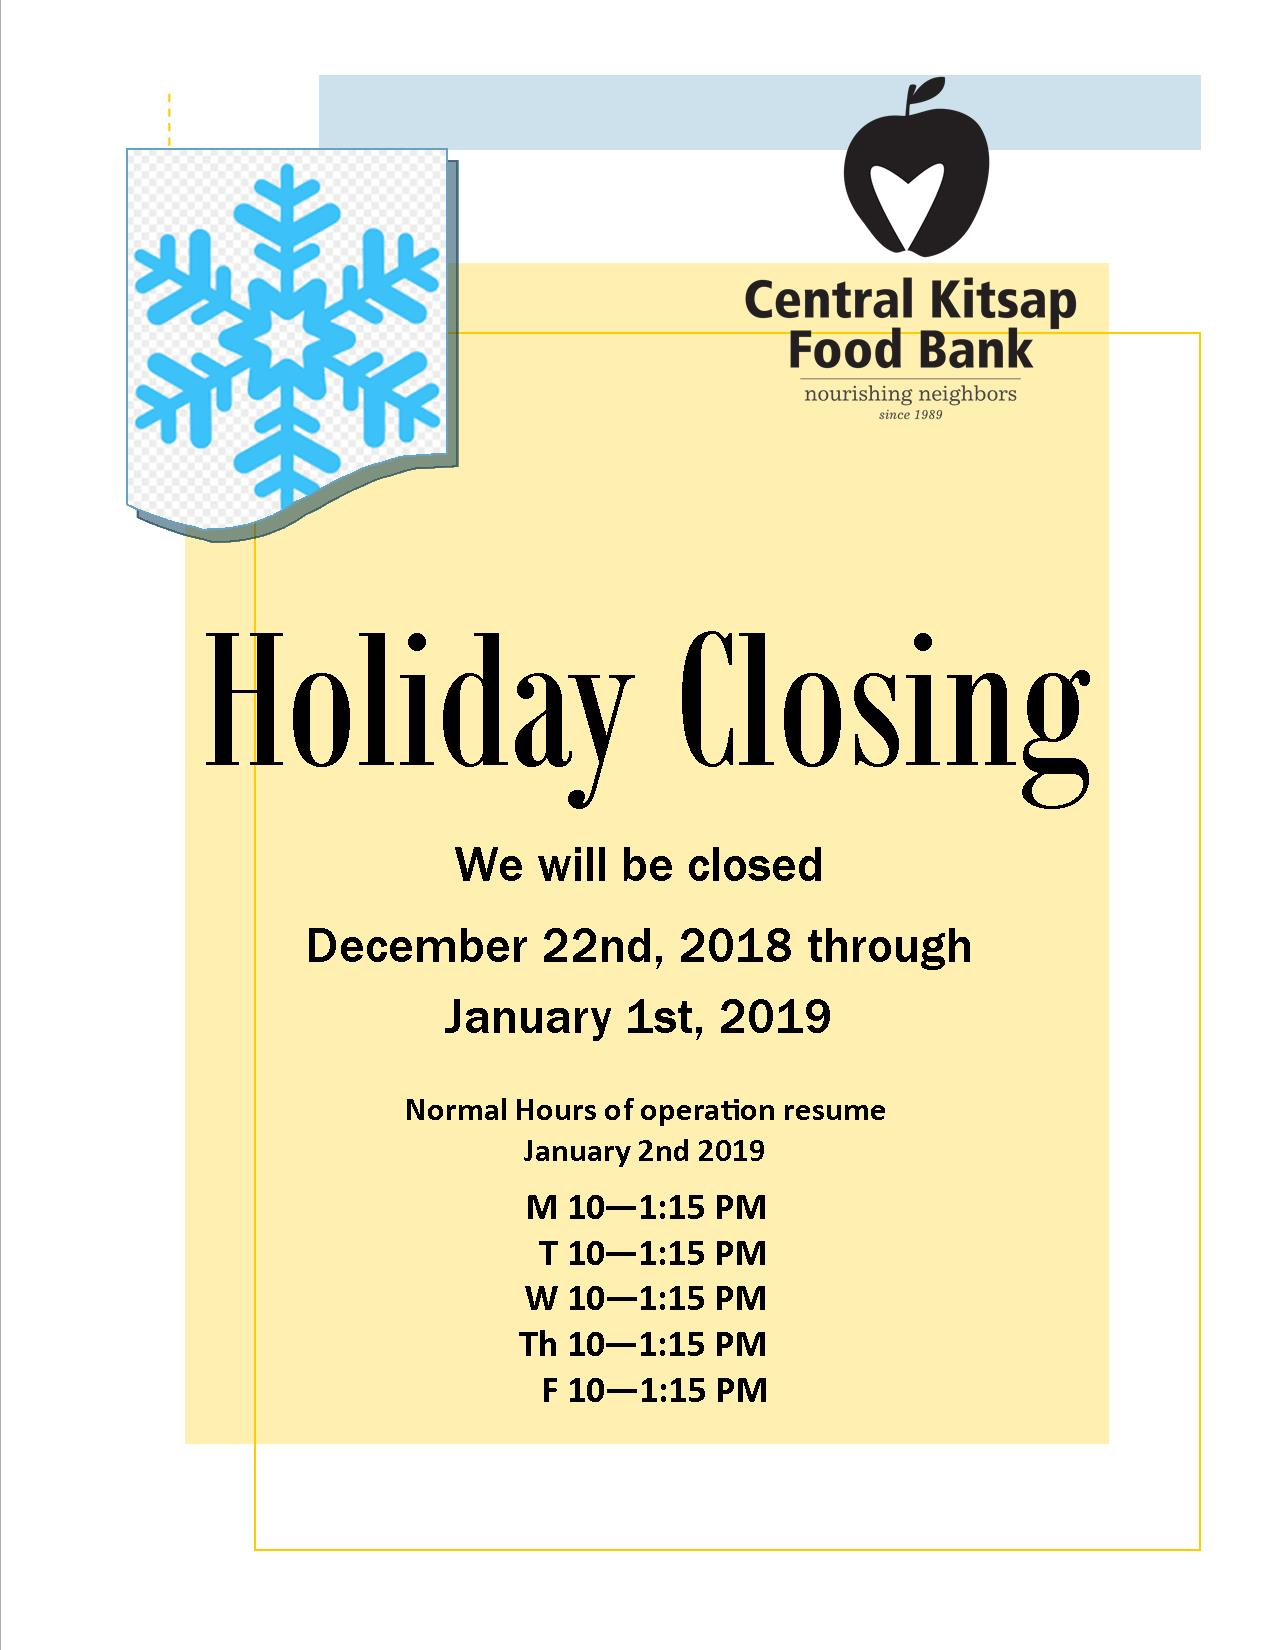 we will be closed from December 22nd thru January 1st, 2019, opening up on January 2nd. Normal hours will be M-F 10-1:15pm